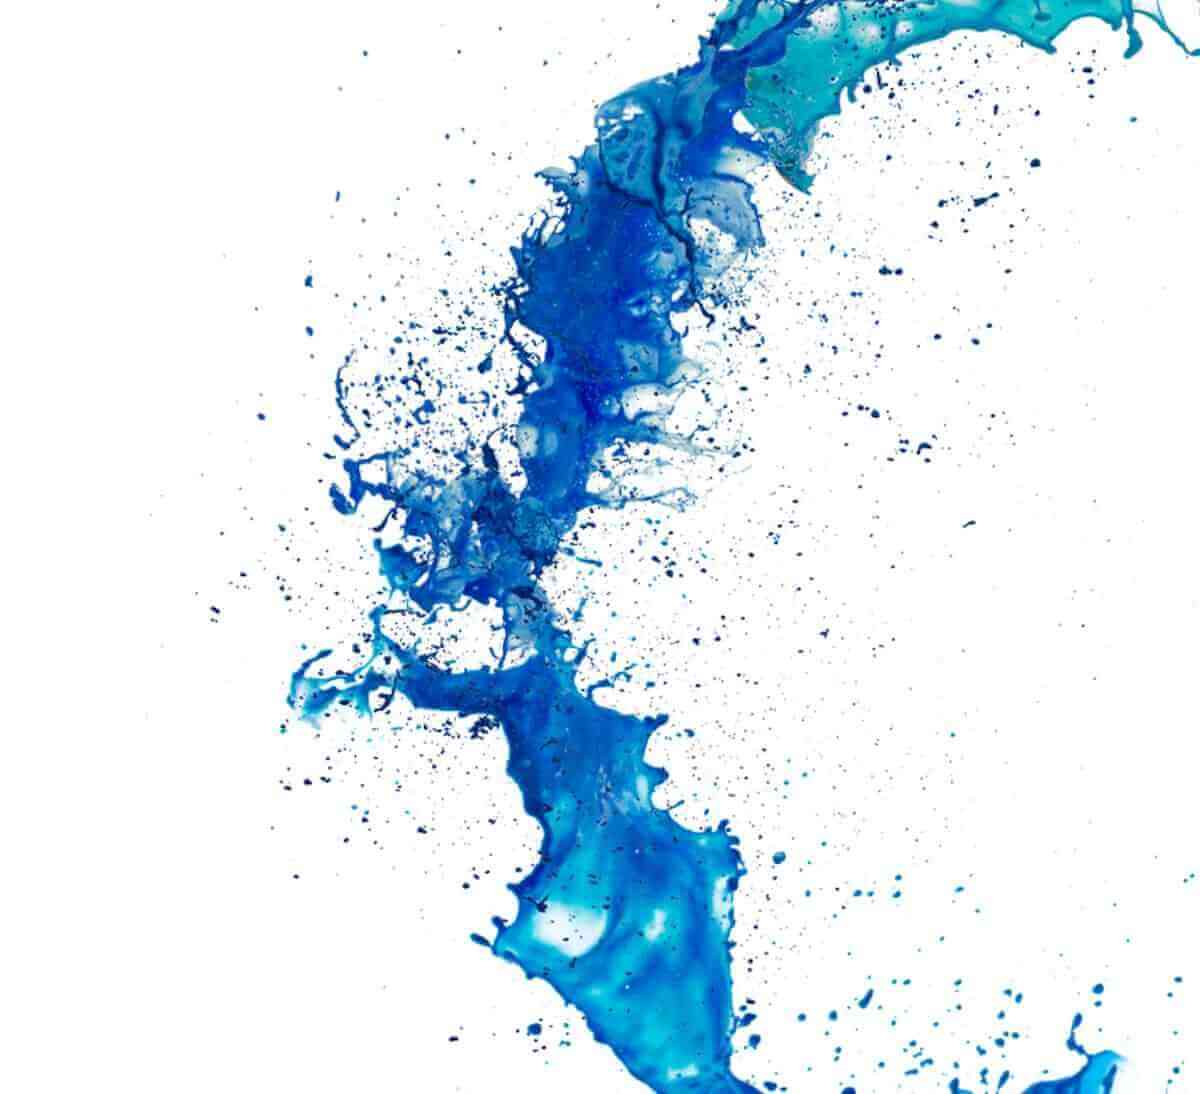 Inkjet ink with blue and green colors splatter